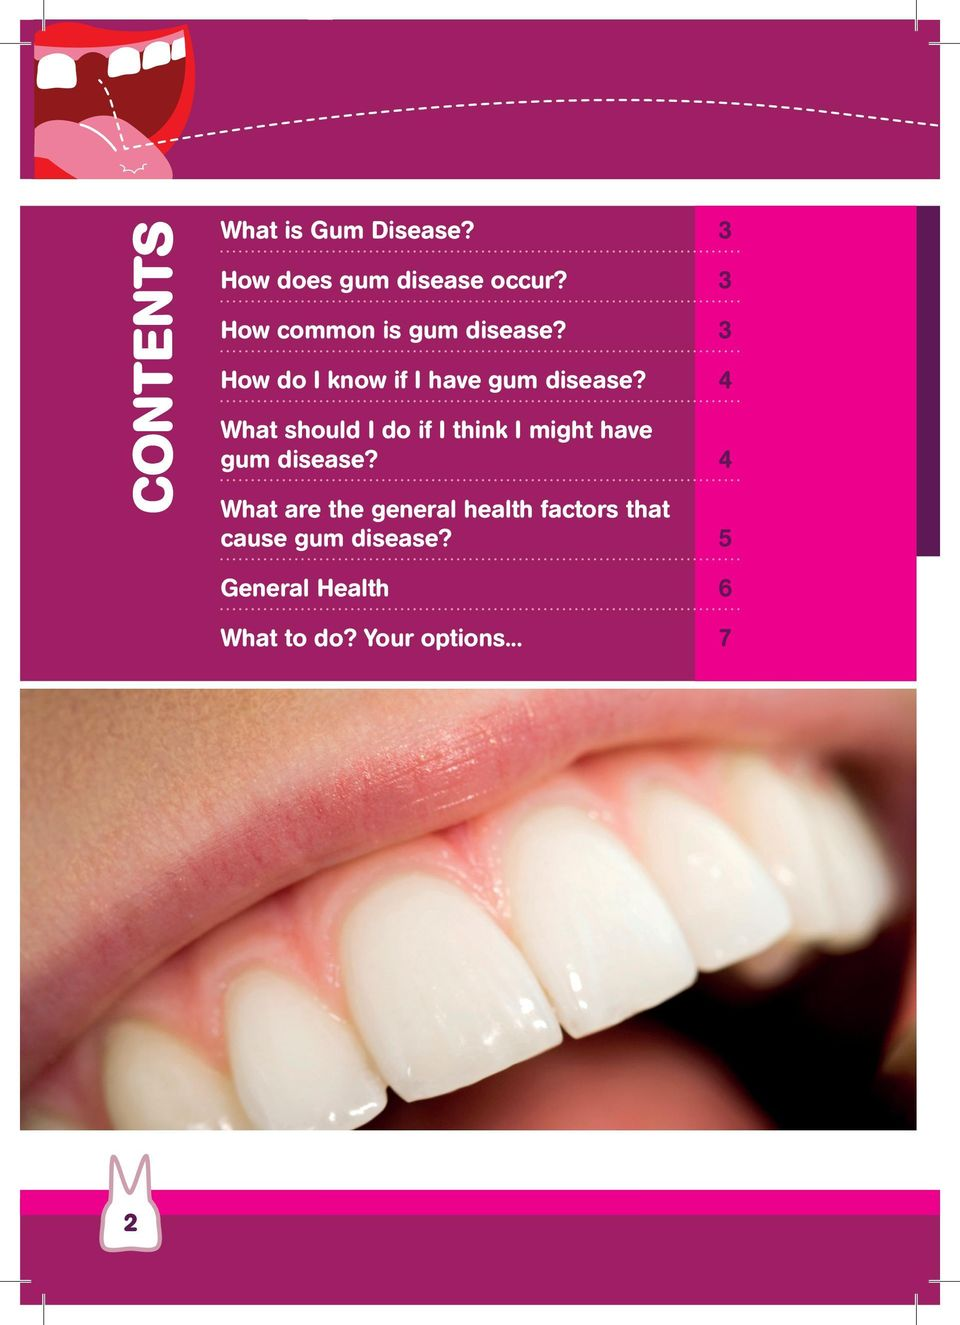 4 What should I do if I think I might have gum disease?